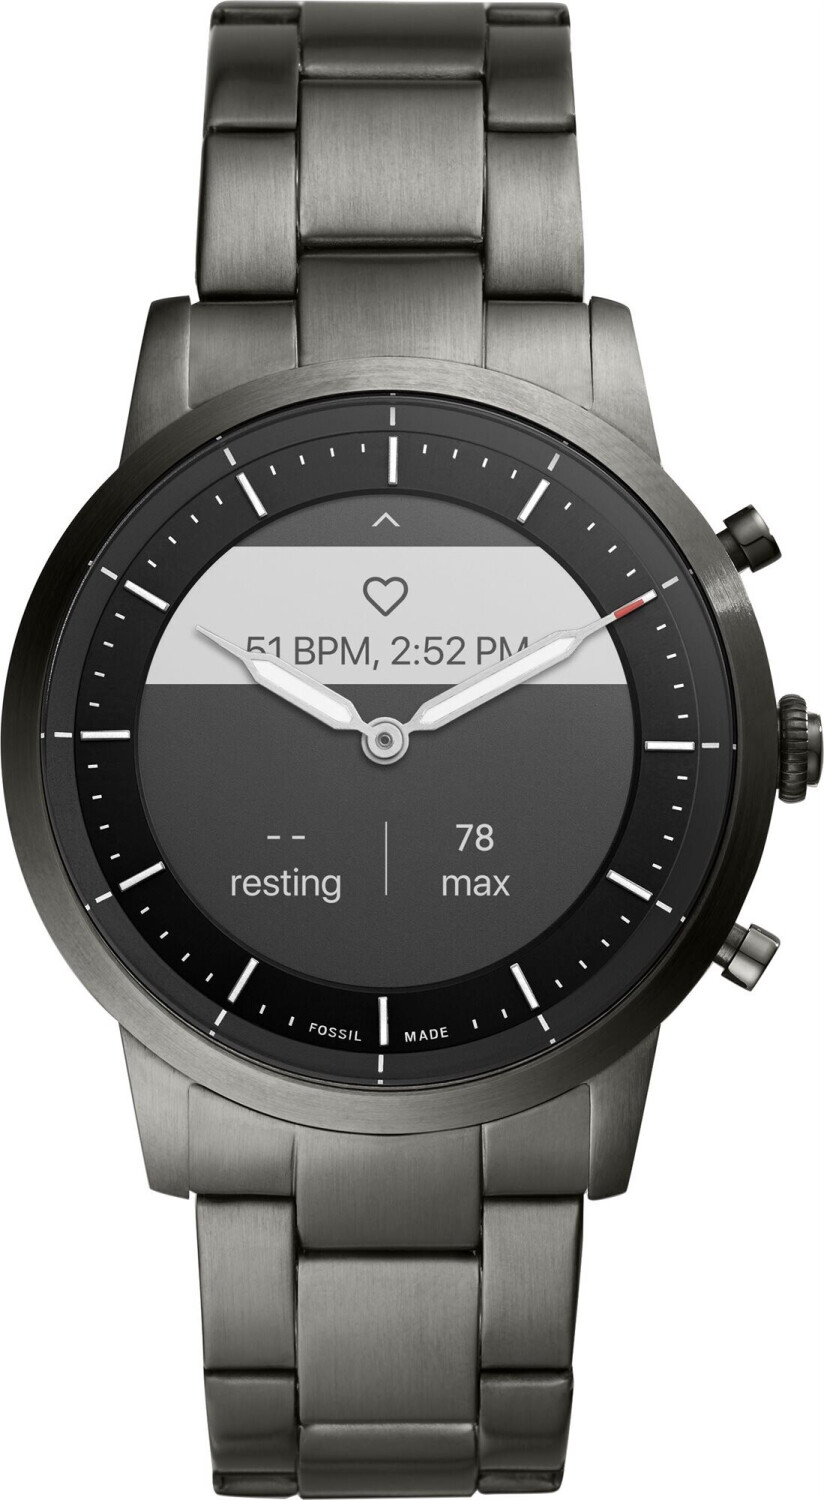 Image of Fossil Collider HR Stainless Steel Grey